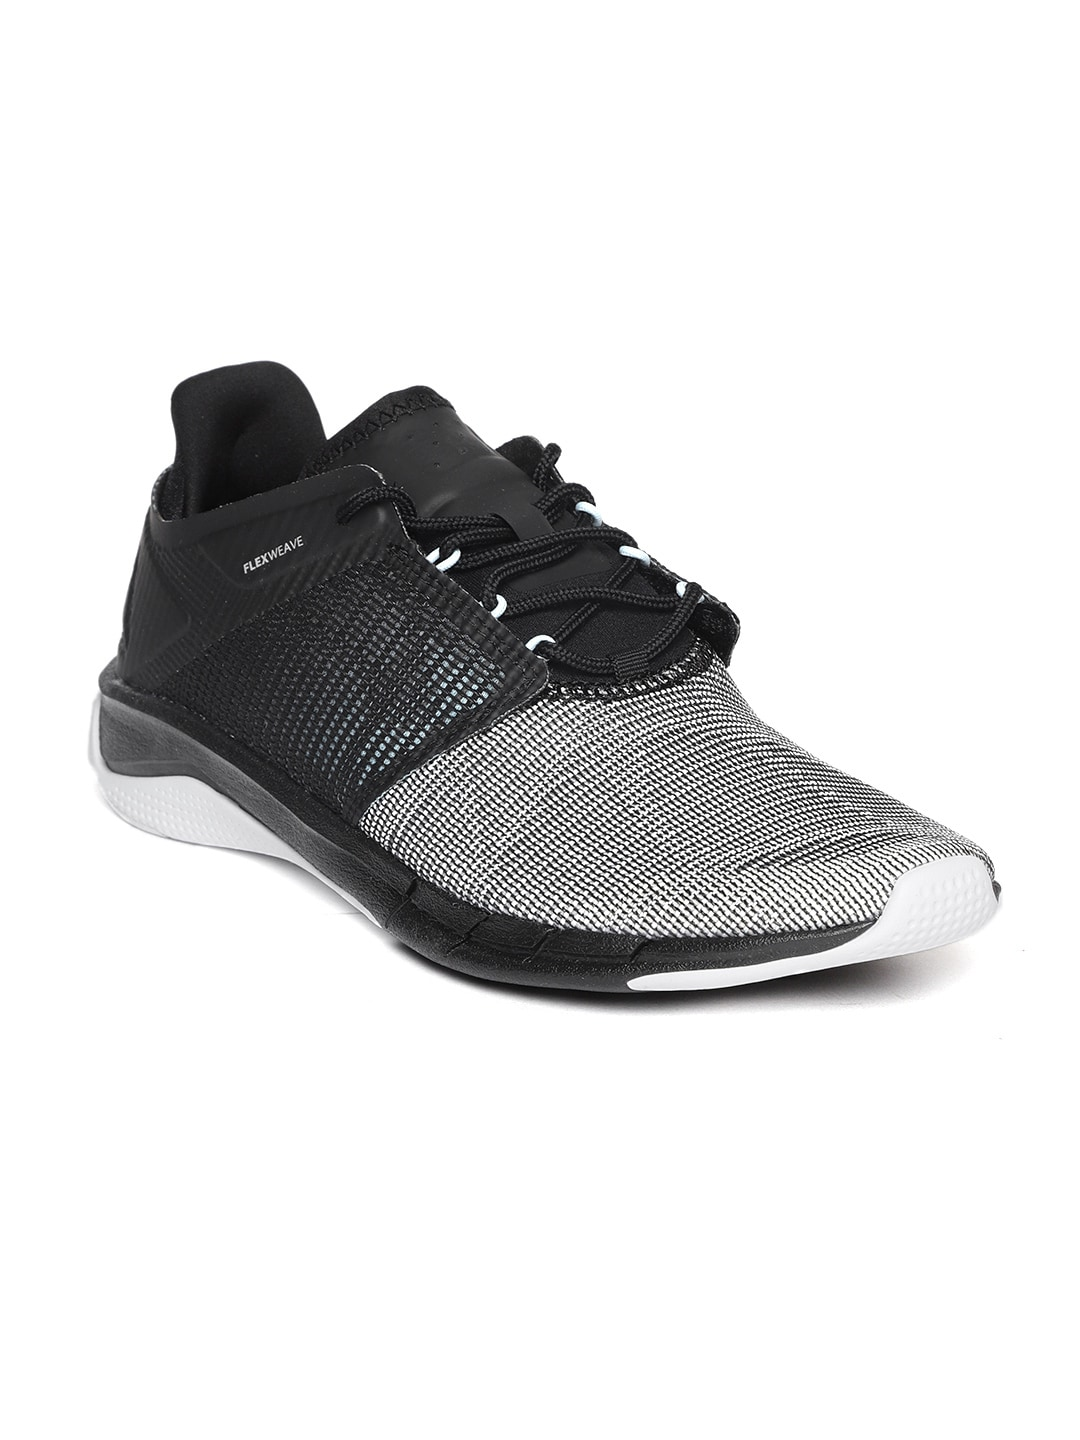 bc8bbdeb7903 Reebok Sports Shoes - Buy Reebok Sports Shoes in India